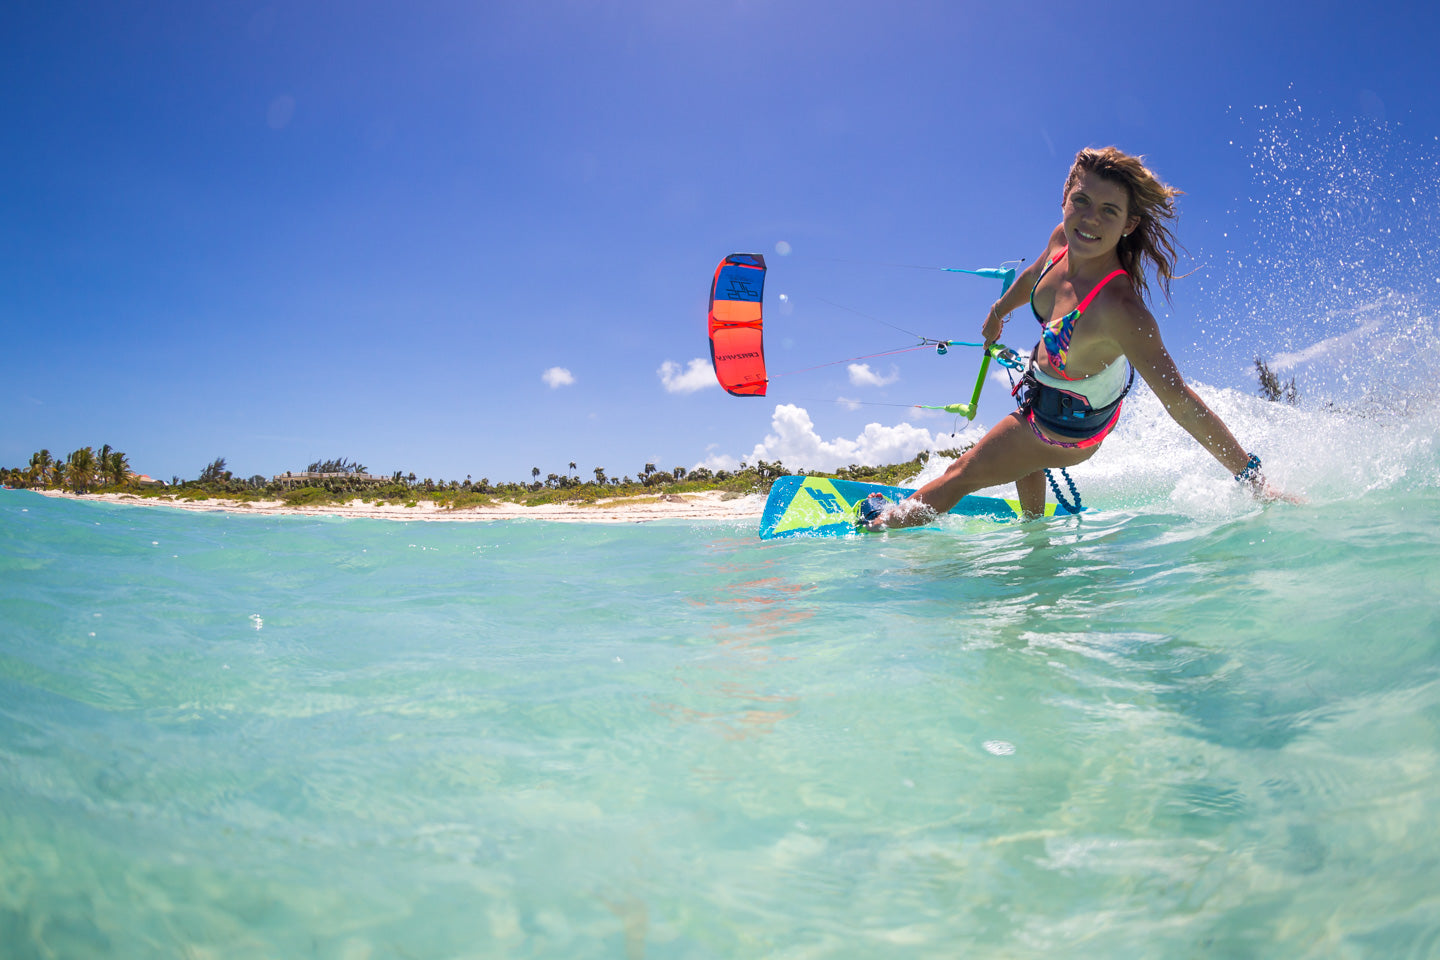 Light wind kite board